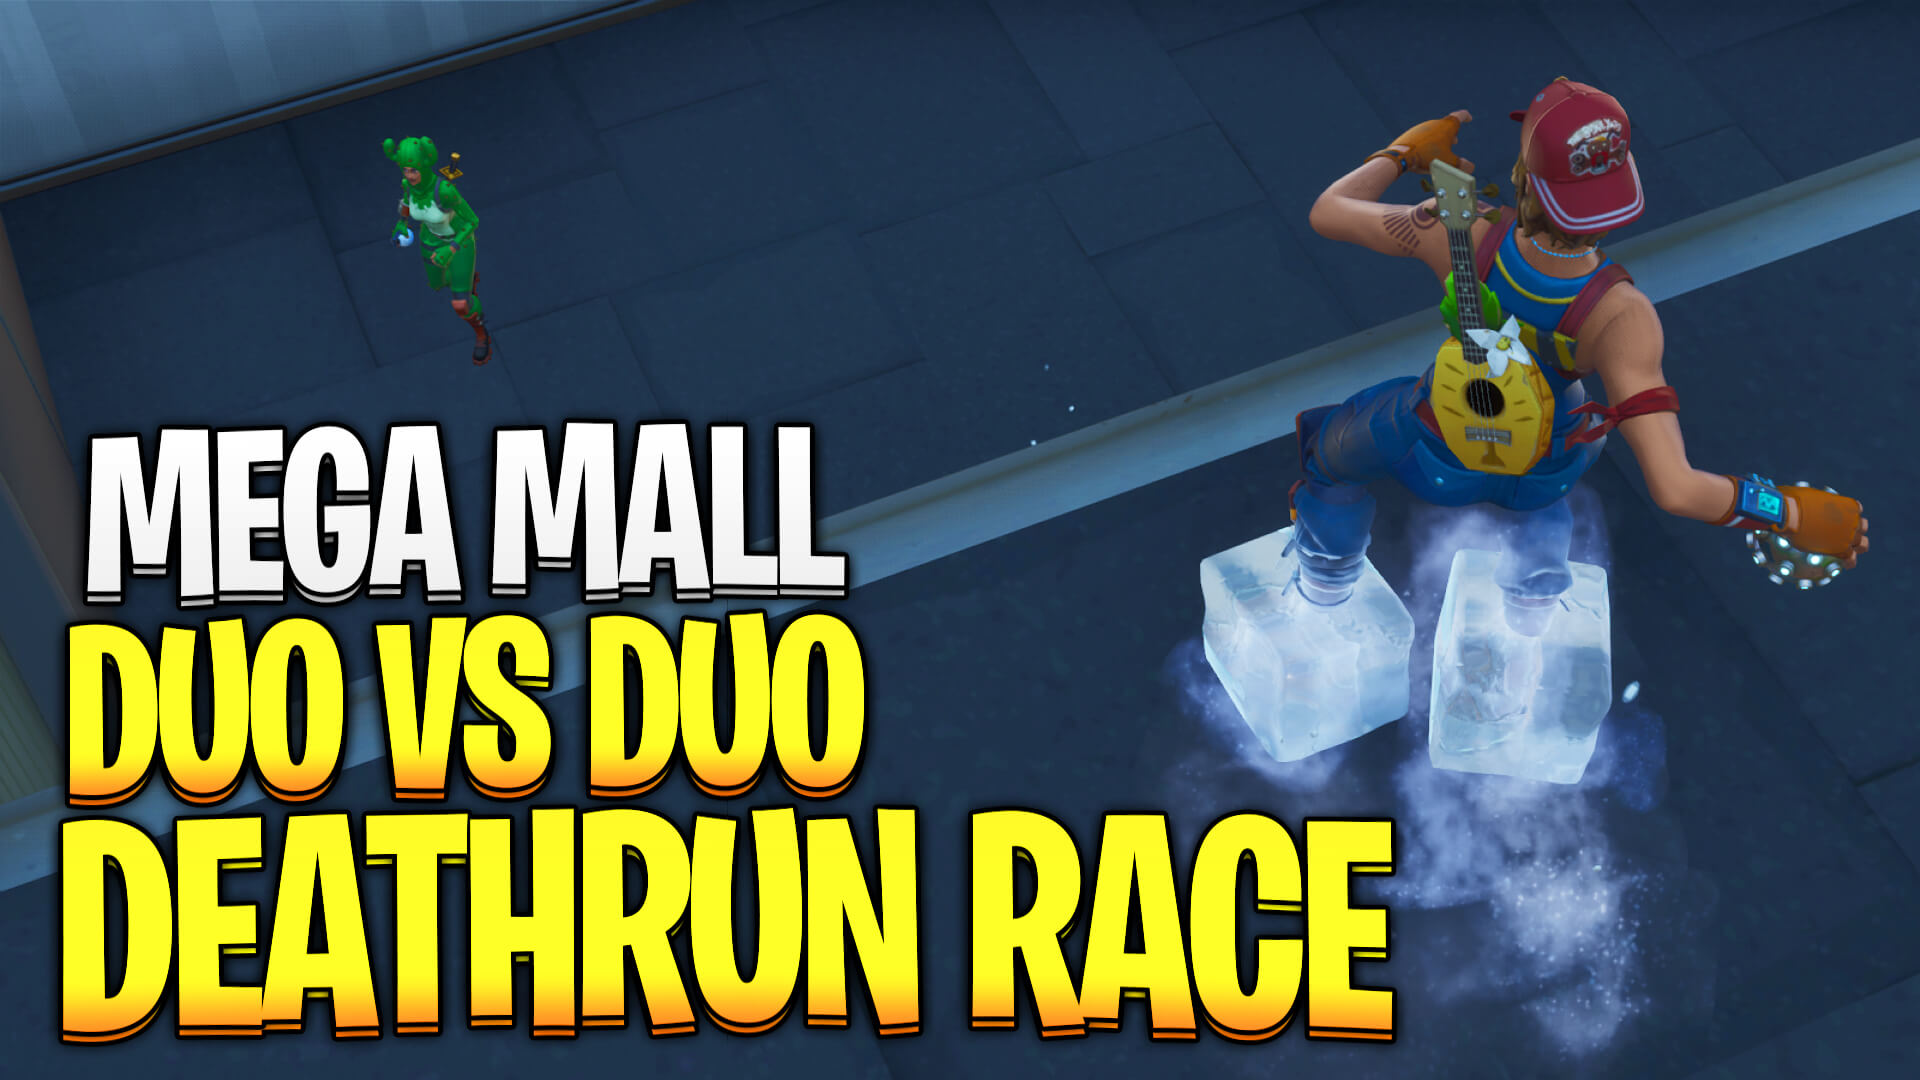 MEGA MALL DUO VS DUO DEATHRUN RACE